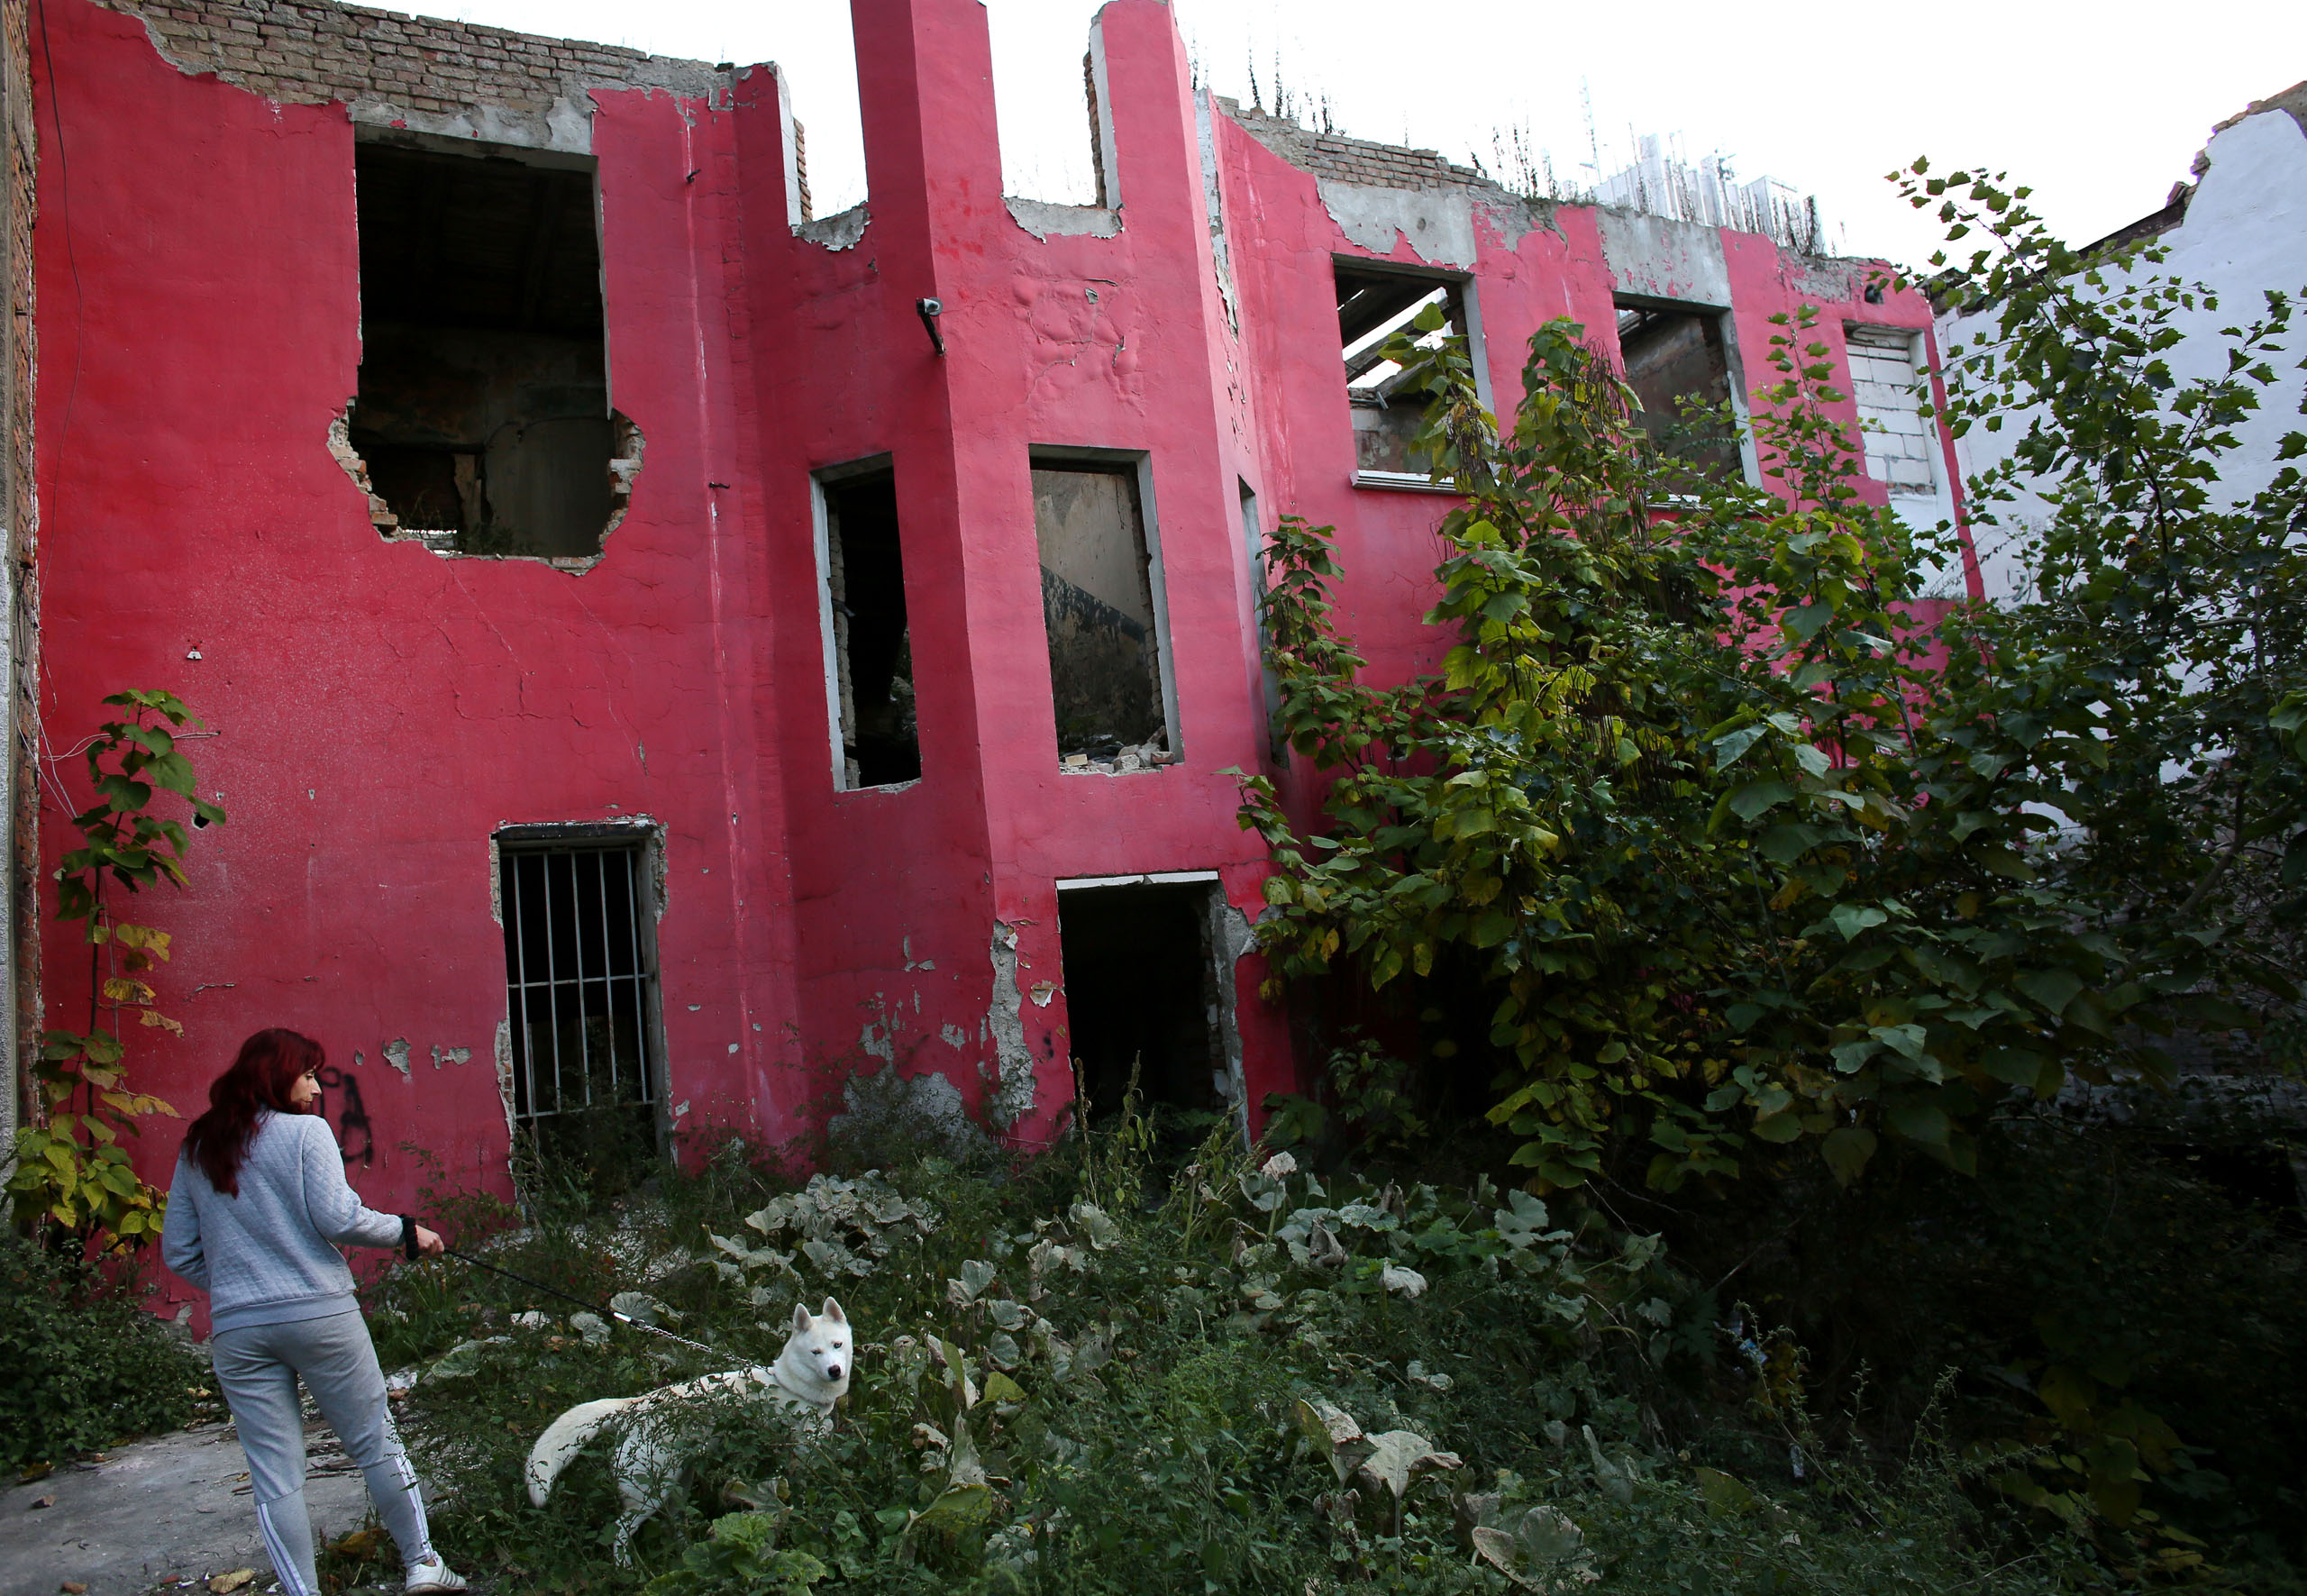 A woman walks her dog by an abandoned building in Vidin, a town in Bulgaria, Oct. 22, 2014.